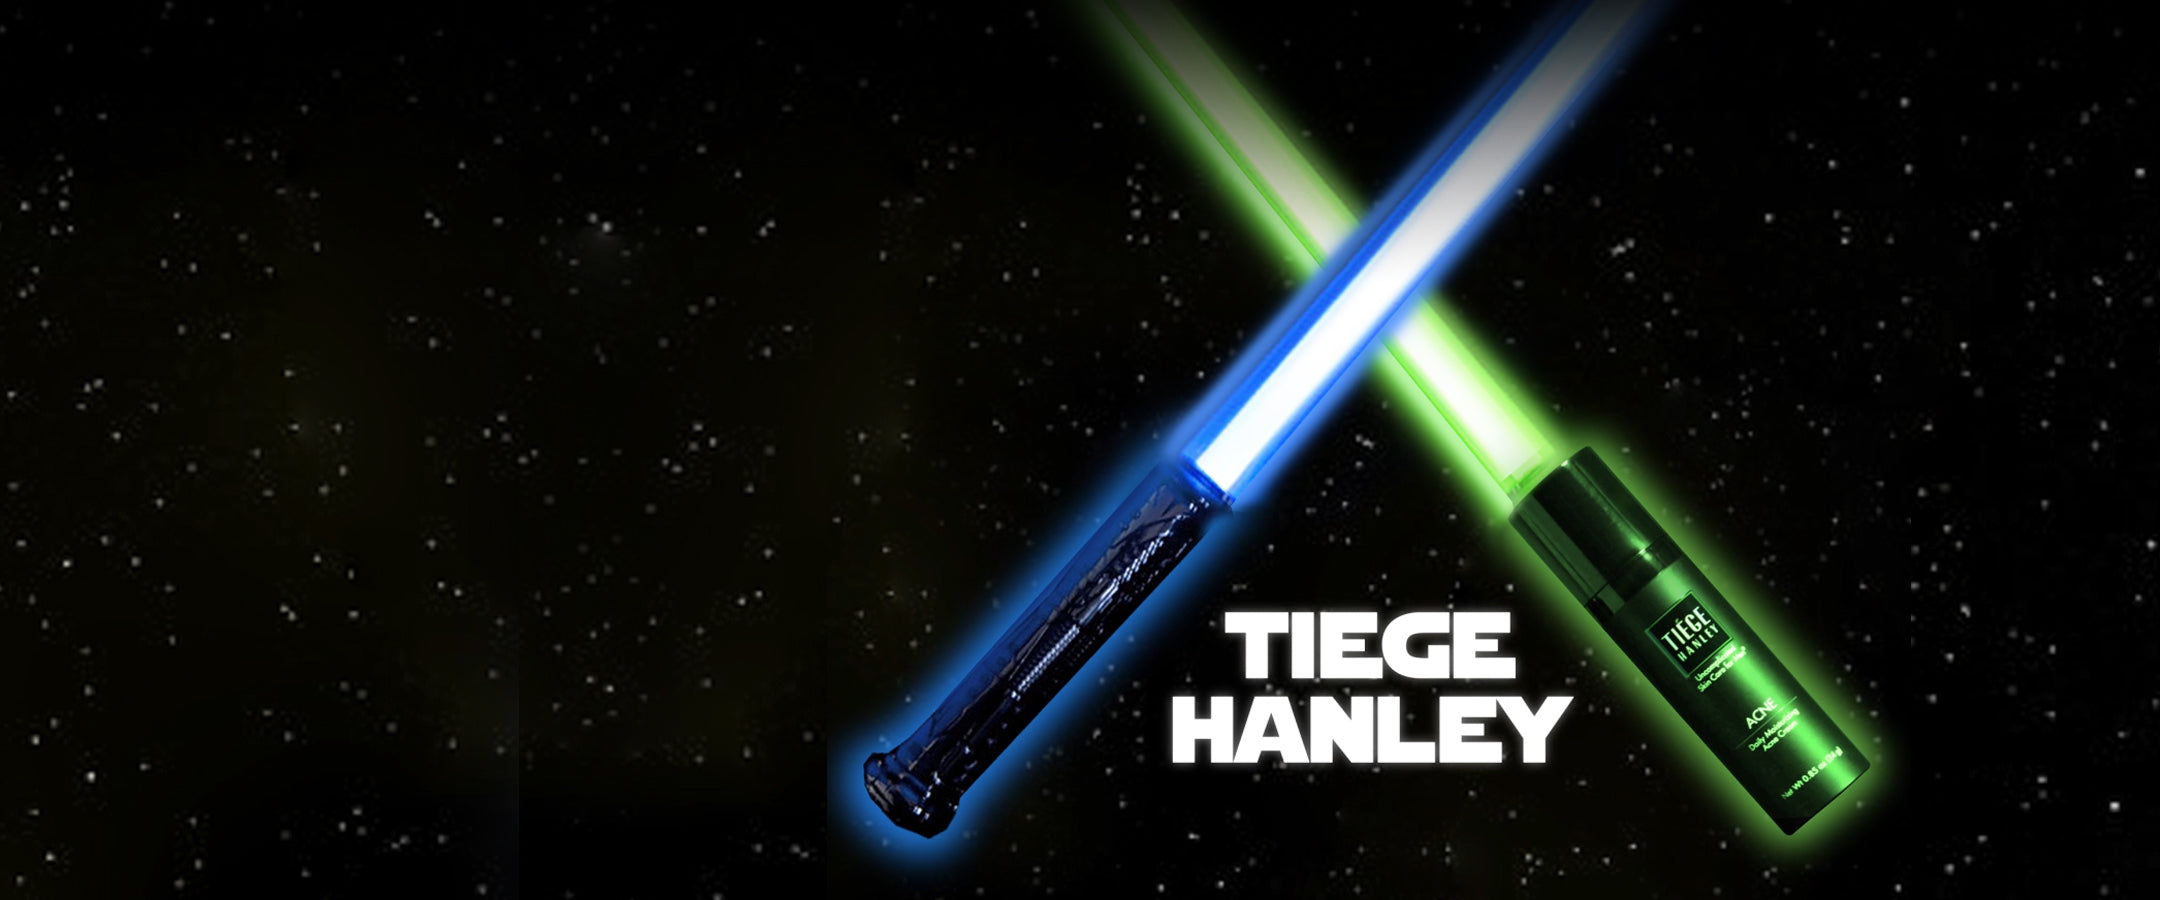 Help me Tiege Hanley, you're my only hope for  great skin!